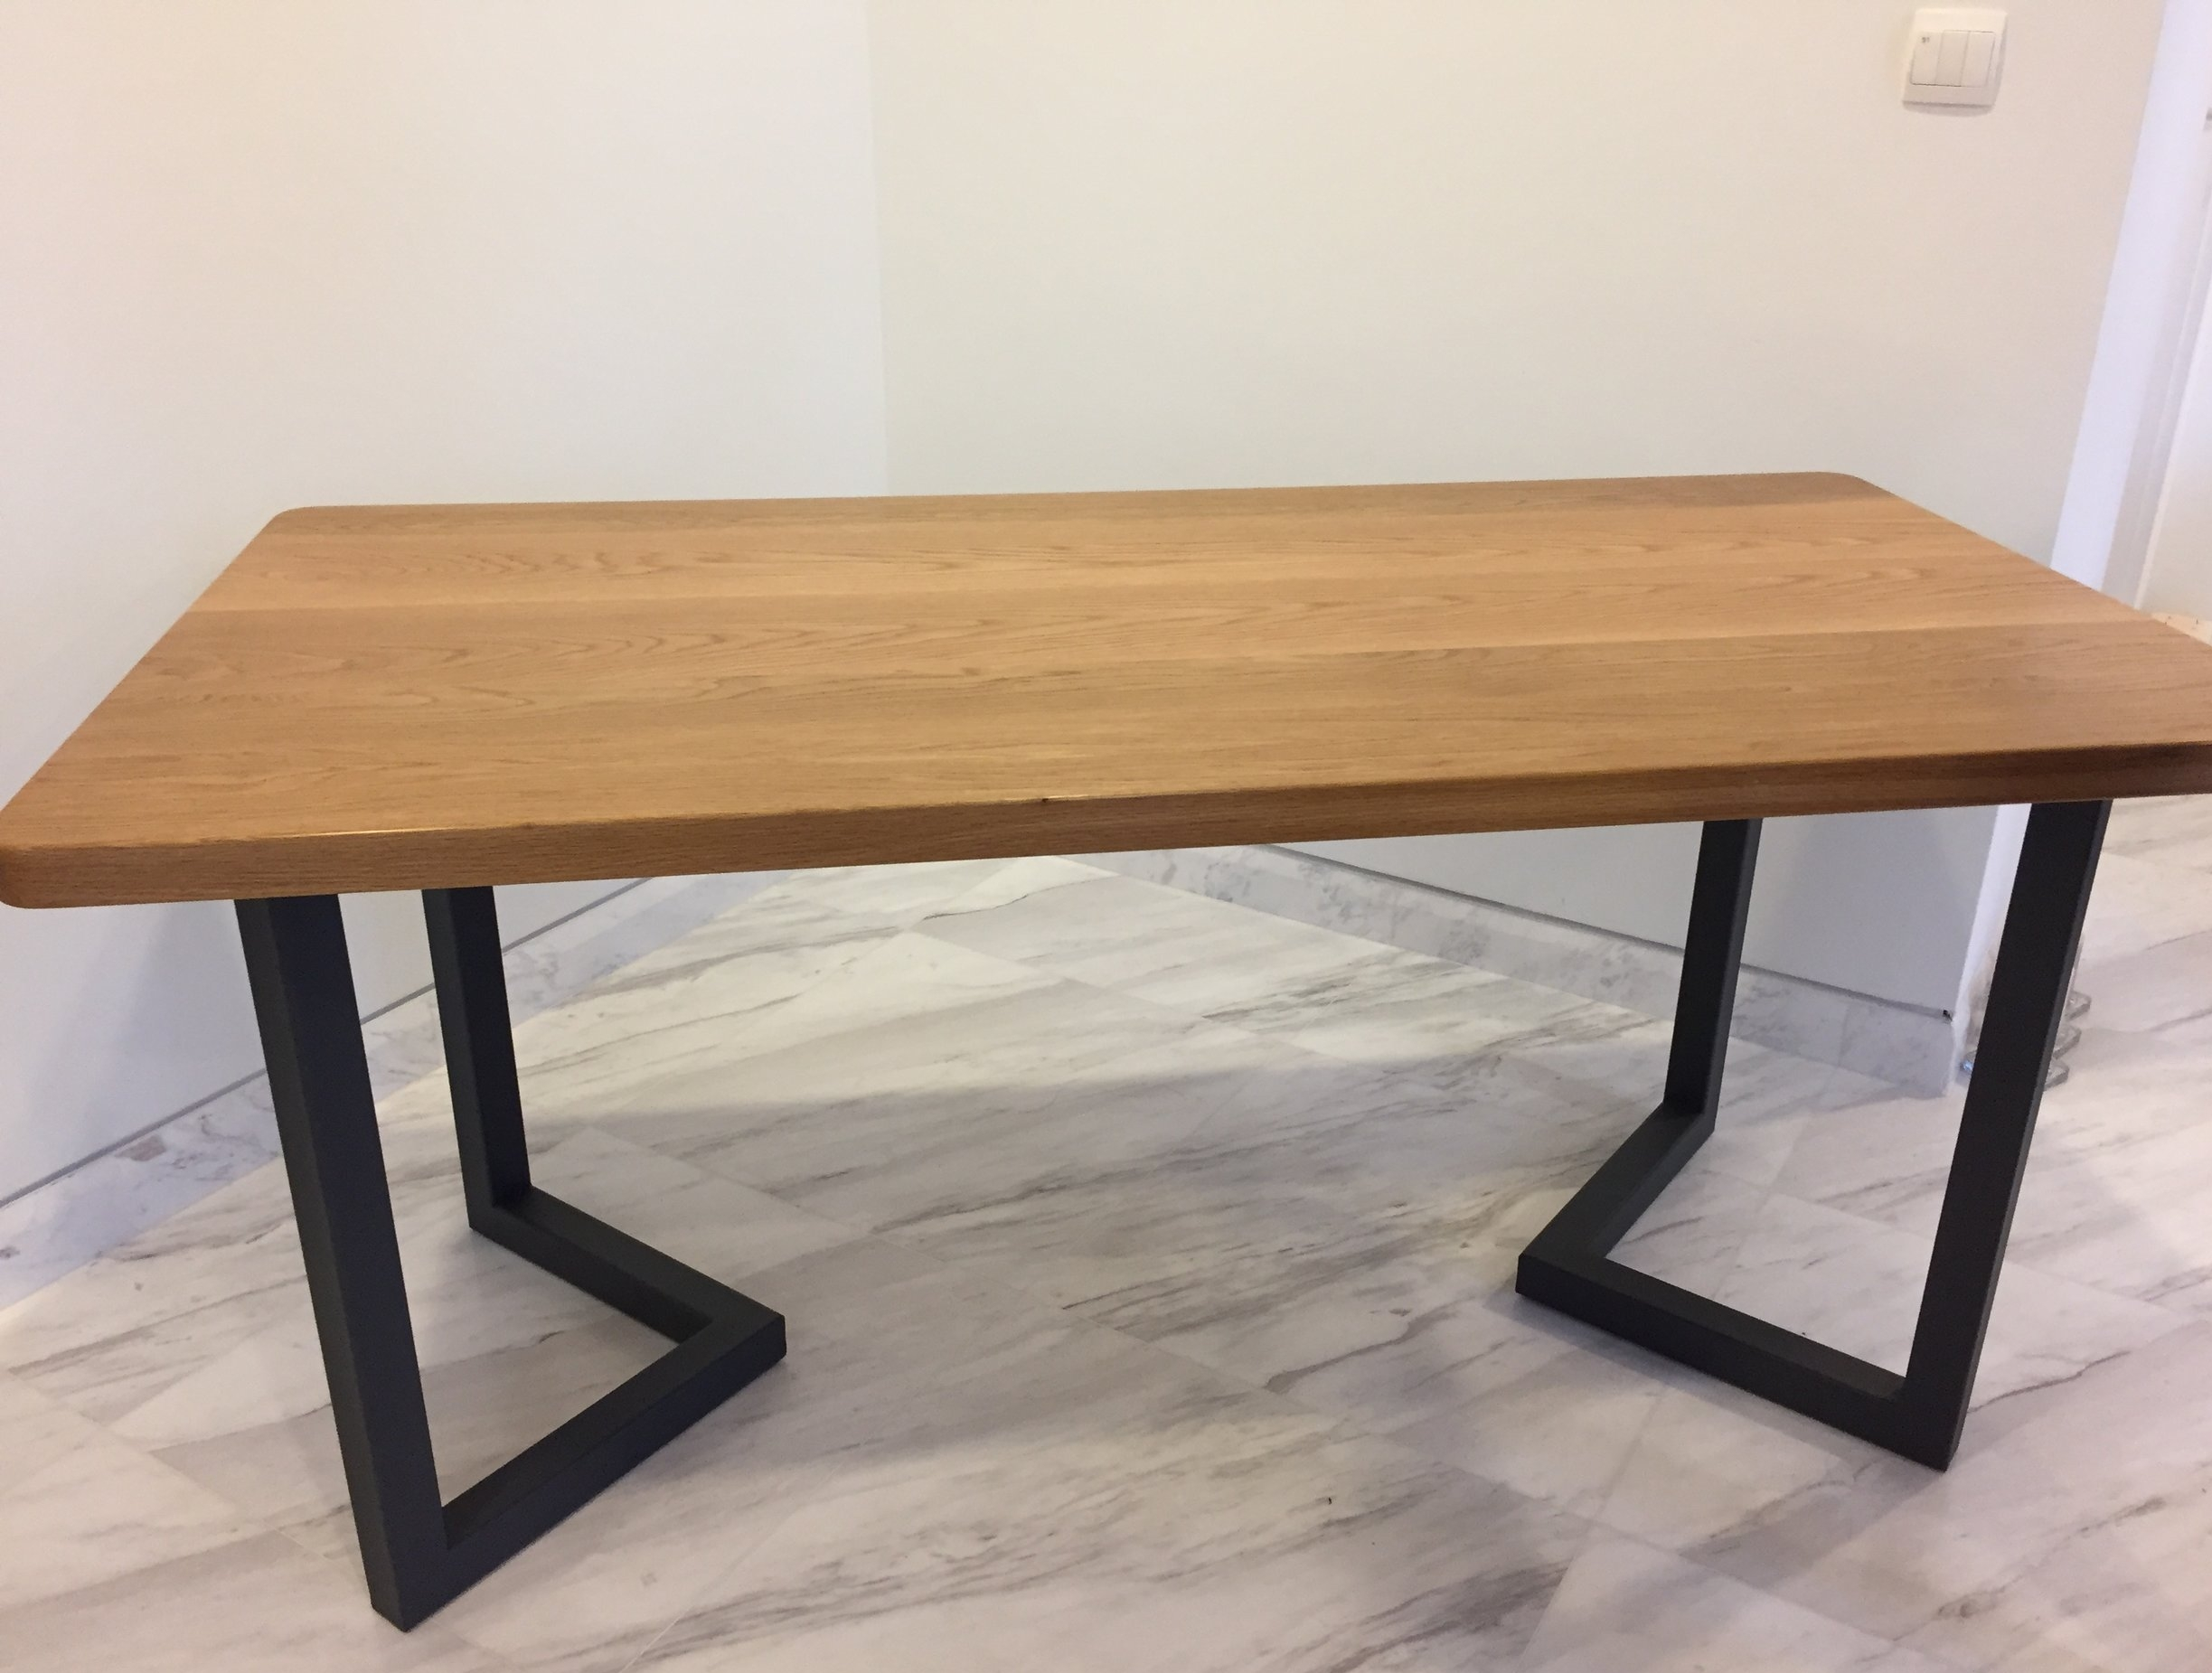 A solid oak table that is built to last.